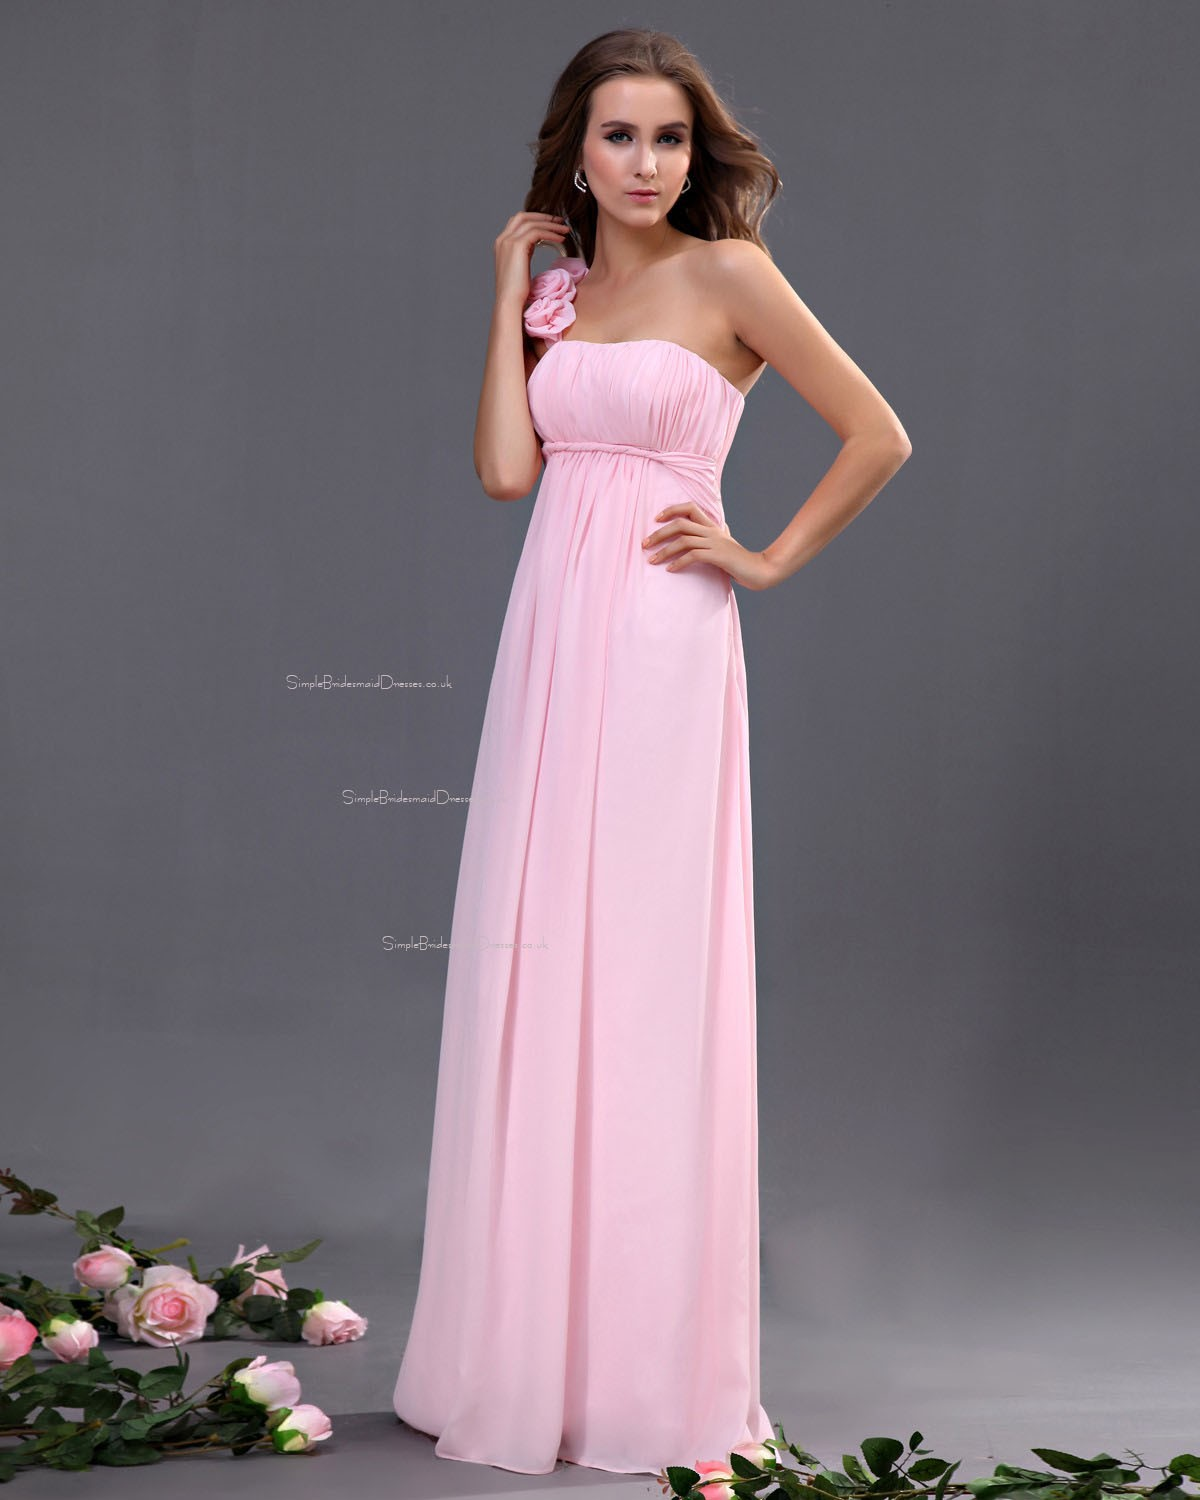 Pink bridesmaid dresses uk cheap pink bridesmaid dresses one shoulder rufflesflowersdraped a line zipper chiffon sleeveless natural floor length pink bridesmaid dress ombrellifo Image collections